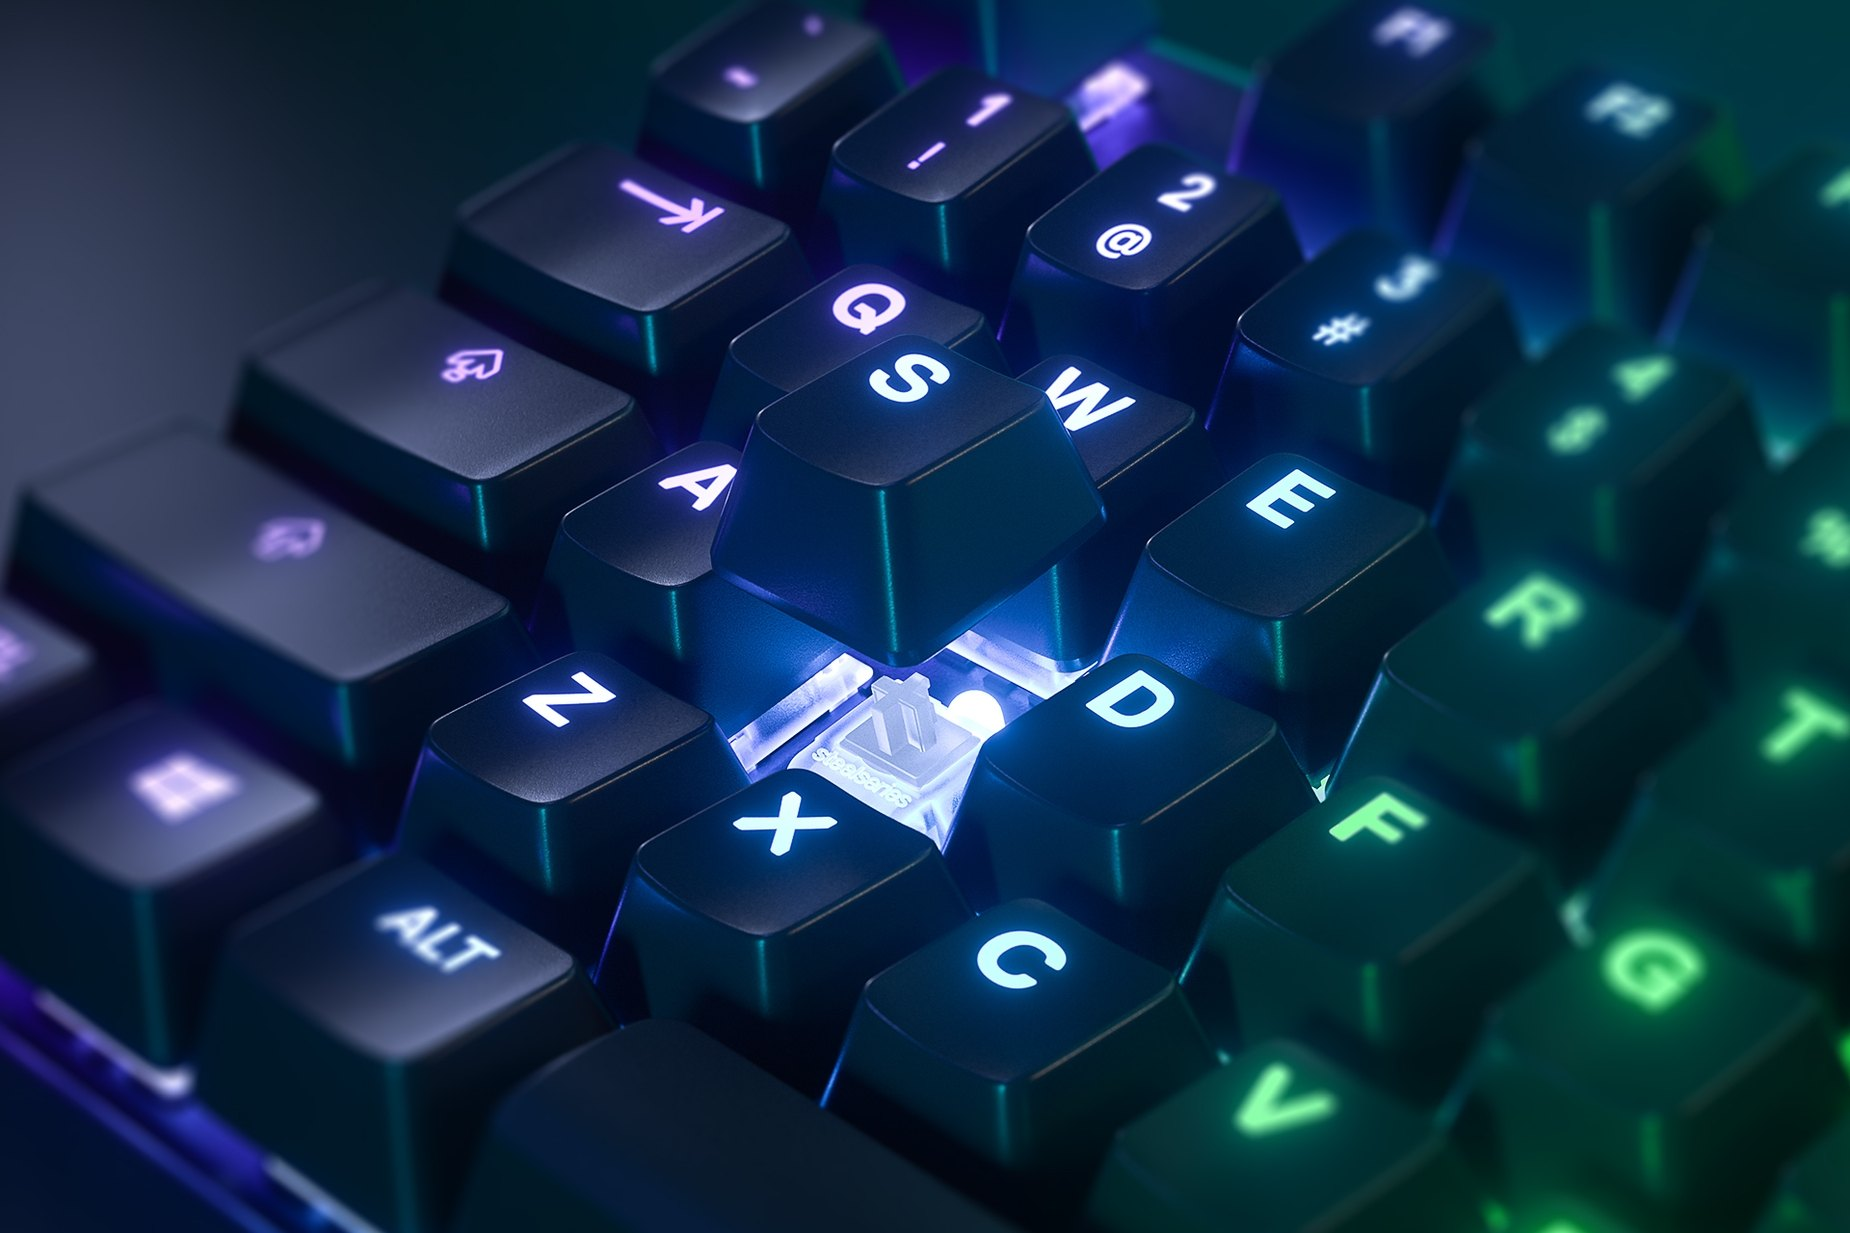 Zoomed in view of a single key on the Japanese - Apex Pro TKL gaming keyboard, the key is raised up to show the SteelSeries OmniPoint Adjustable Mechanical Switch underneath